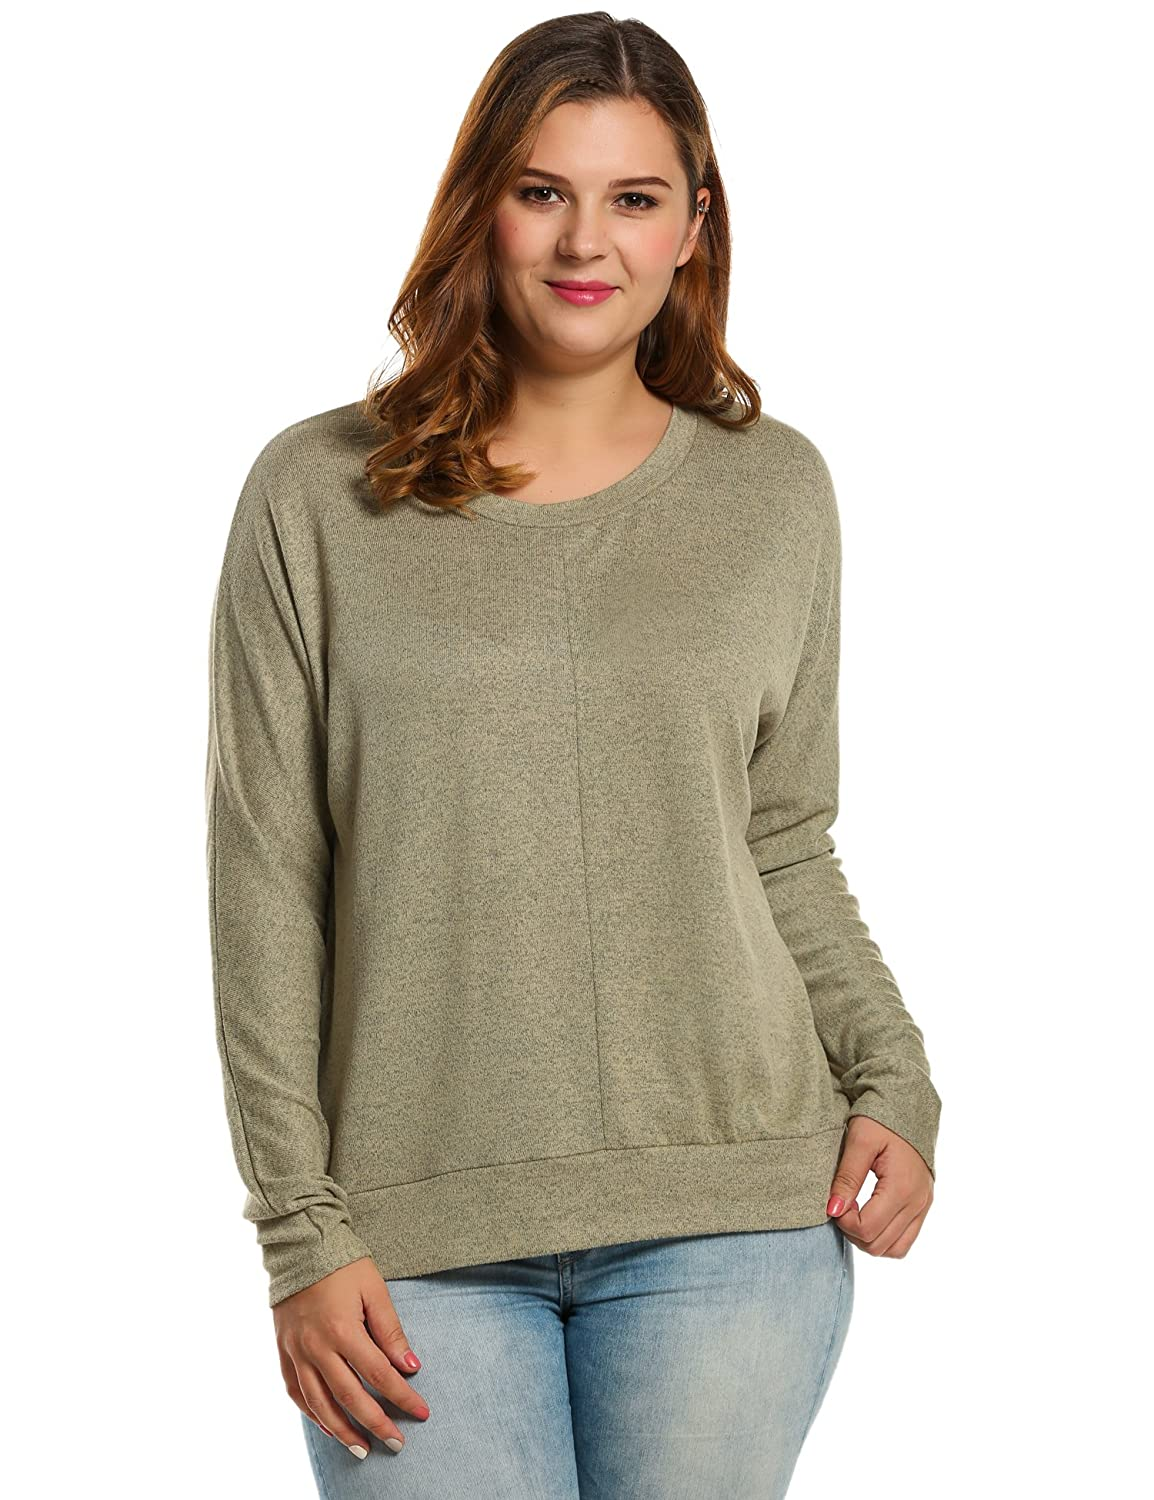 Meaneor Plus Size Long Sleeves Womens Casual Crew Neck Knit Pullover Sweater